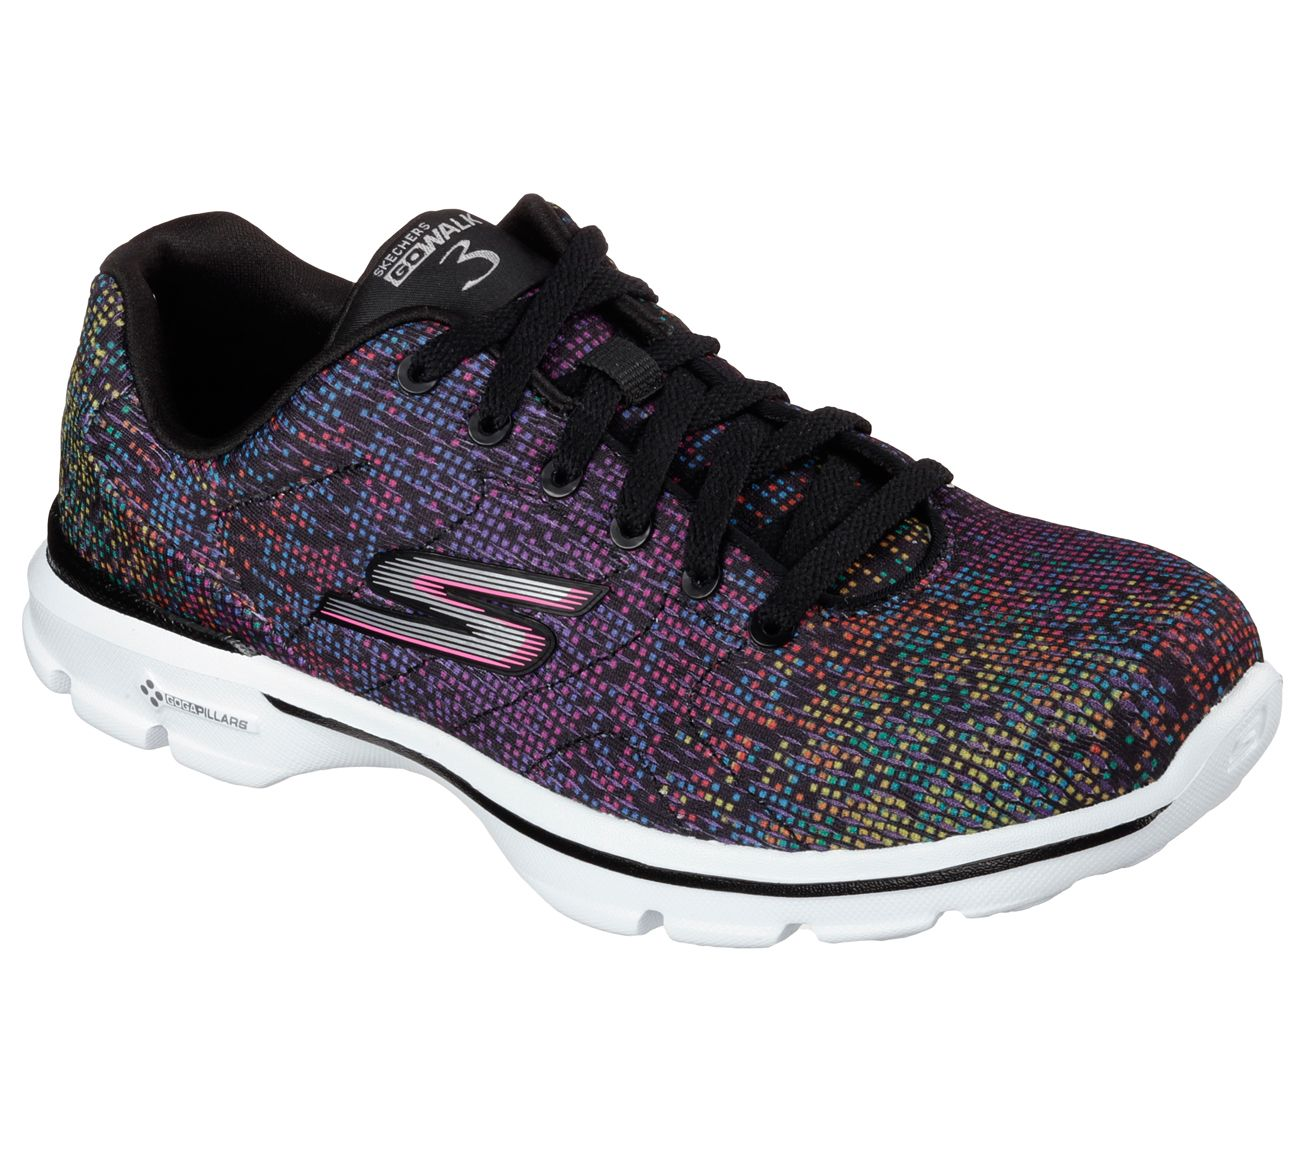 The next evolution of athletic walking comes in the Skechers GOwalk 3 -  Digitize. Features